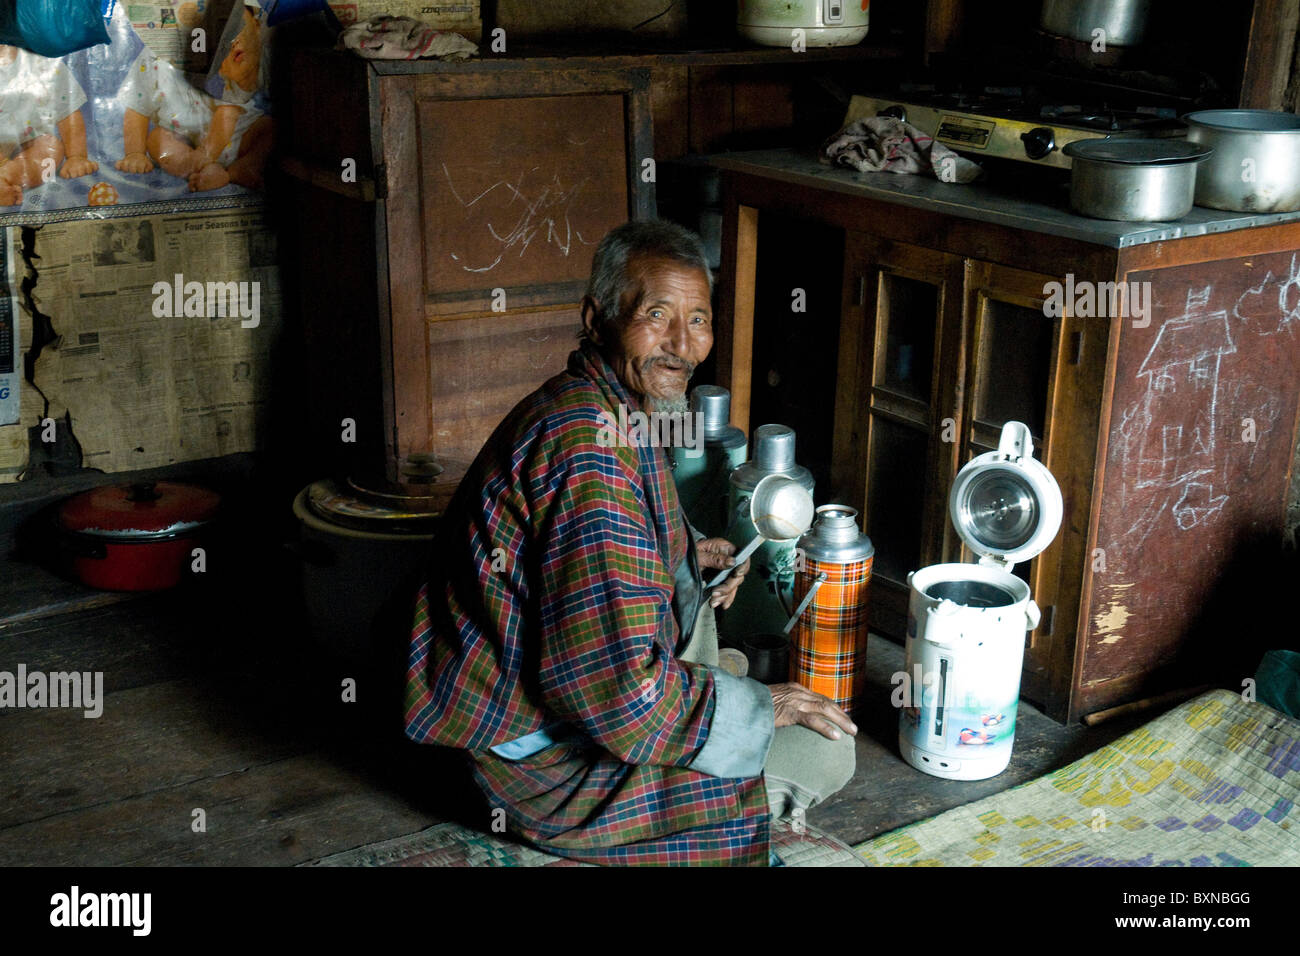 In the kitchen of his farmhouse home in Bhutan the family patriarch prepares a thermos of tea - Stock Image